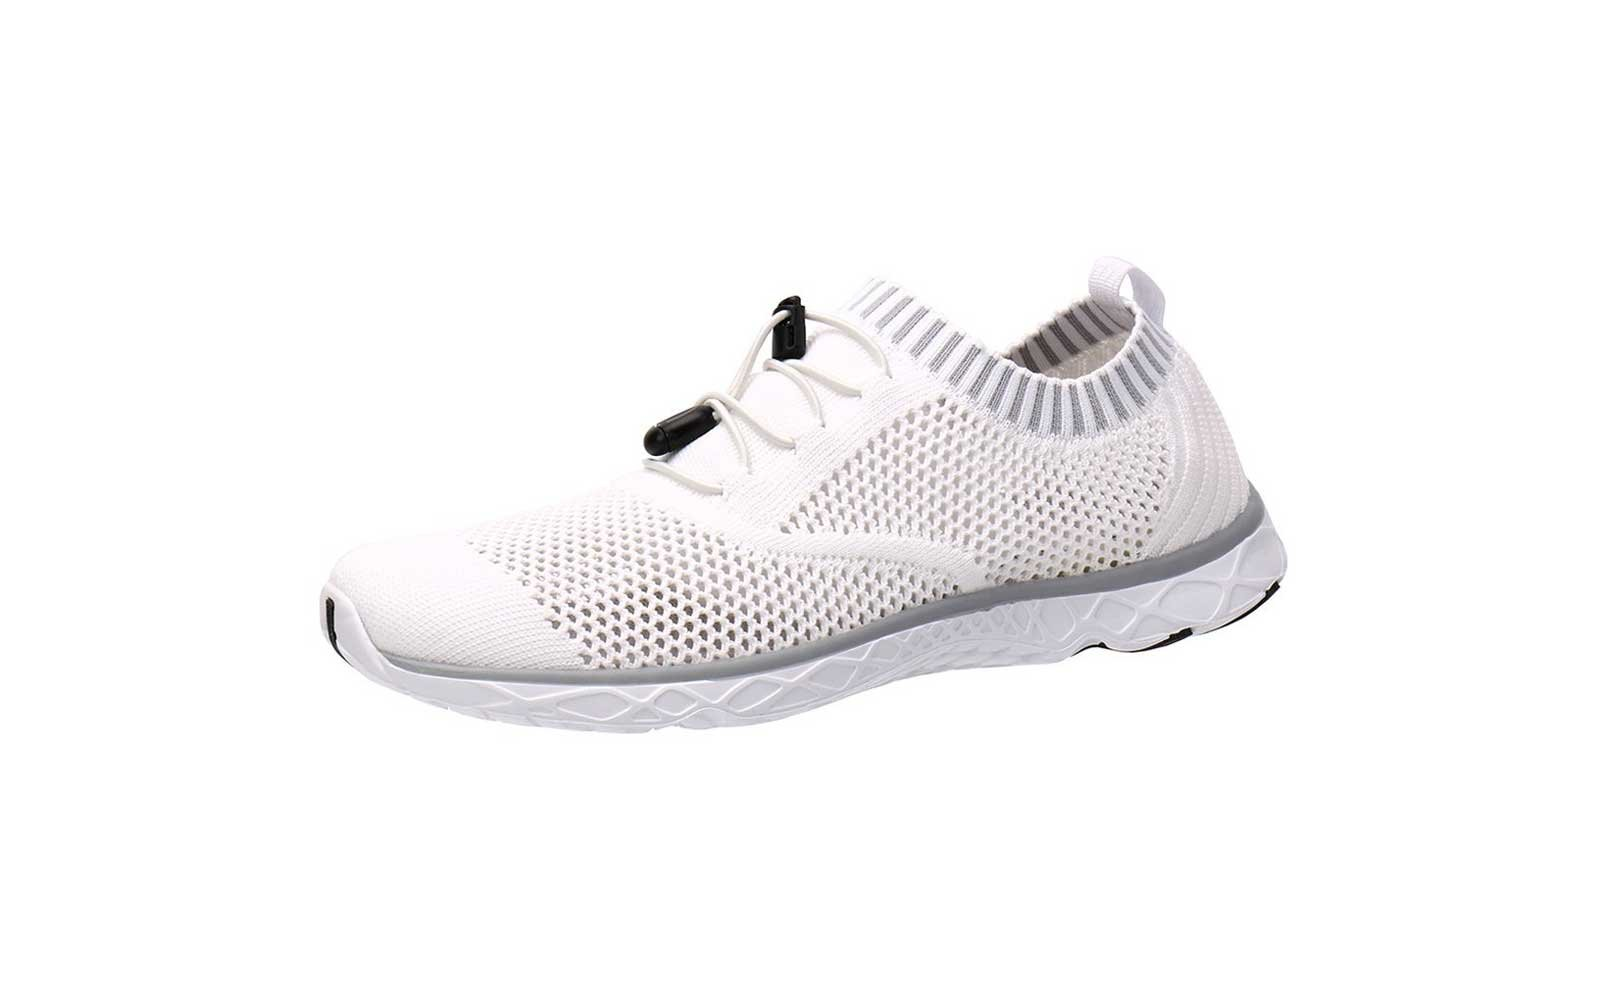 c837a29de8e9 Aleader Men s Quick-drying Aqua Water Shoes